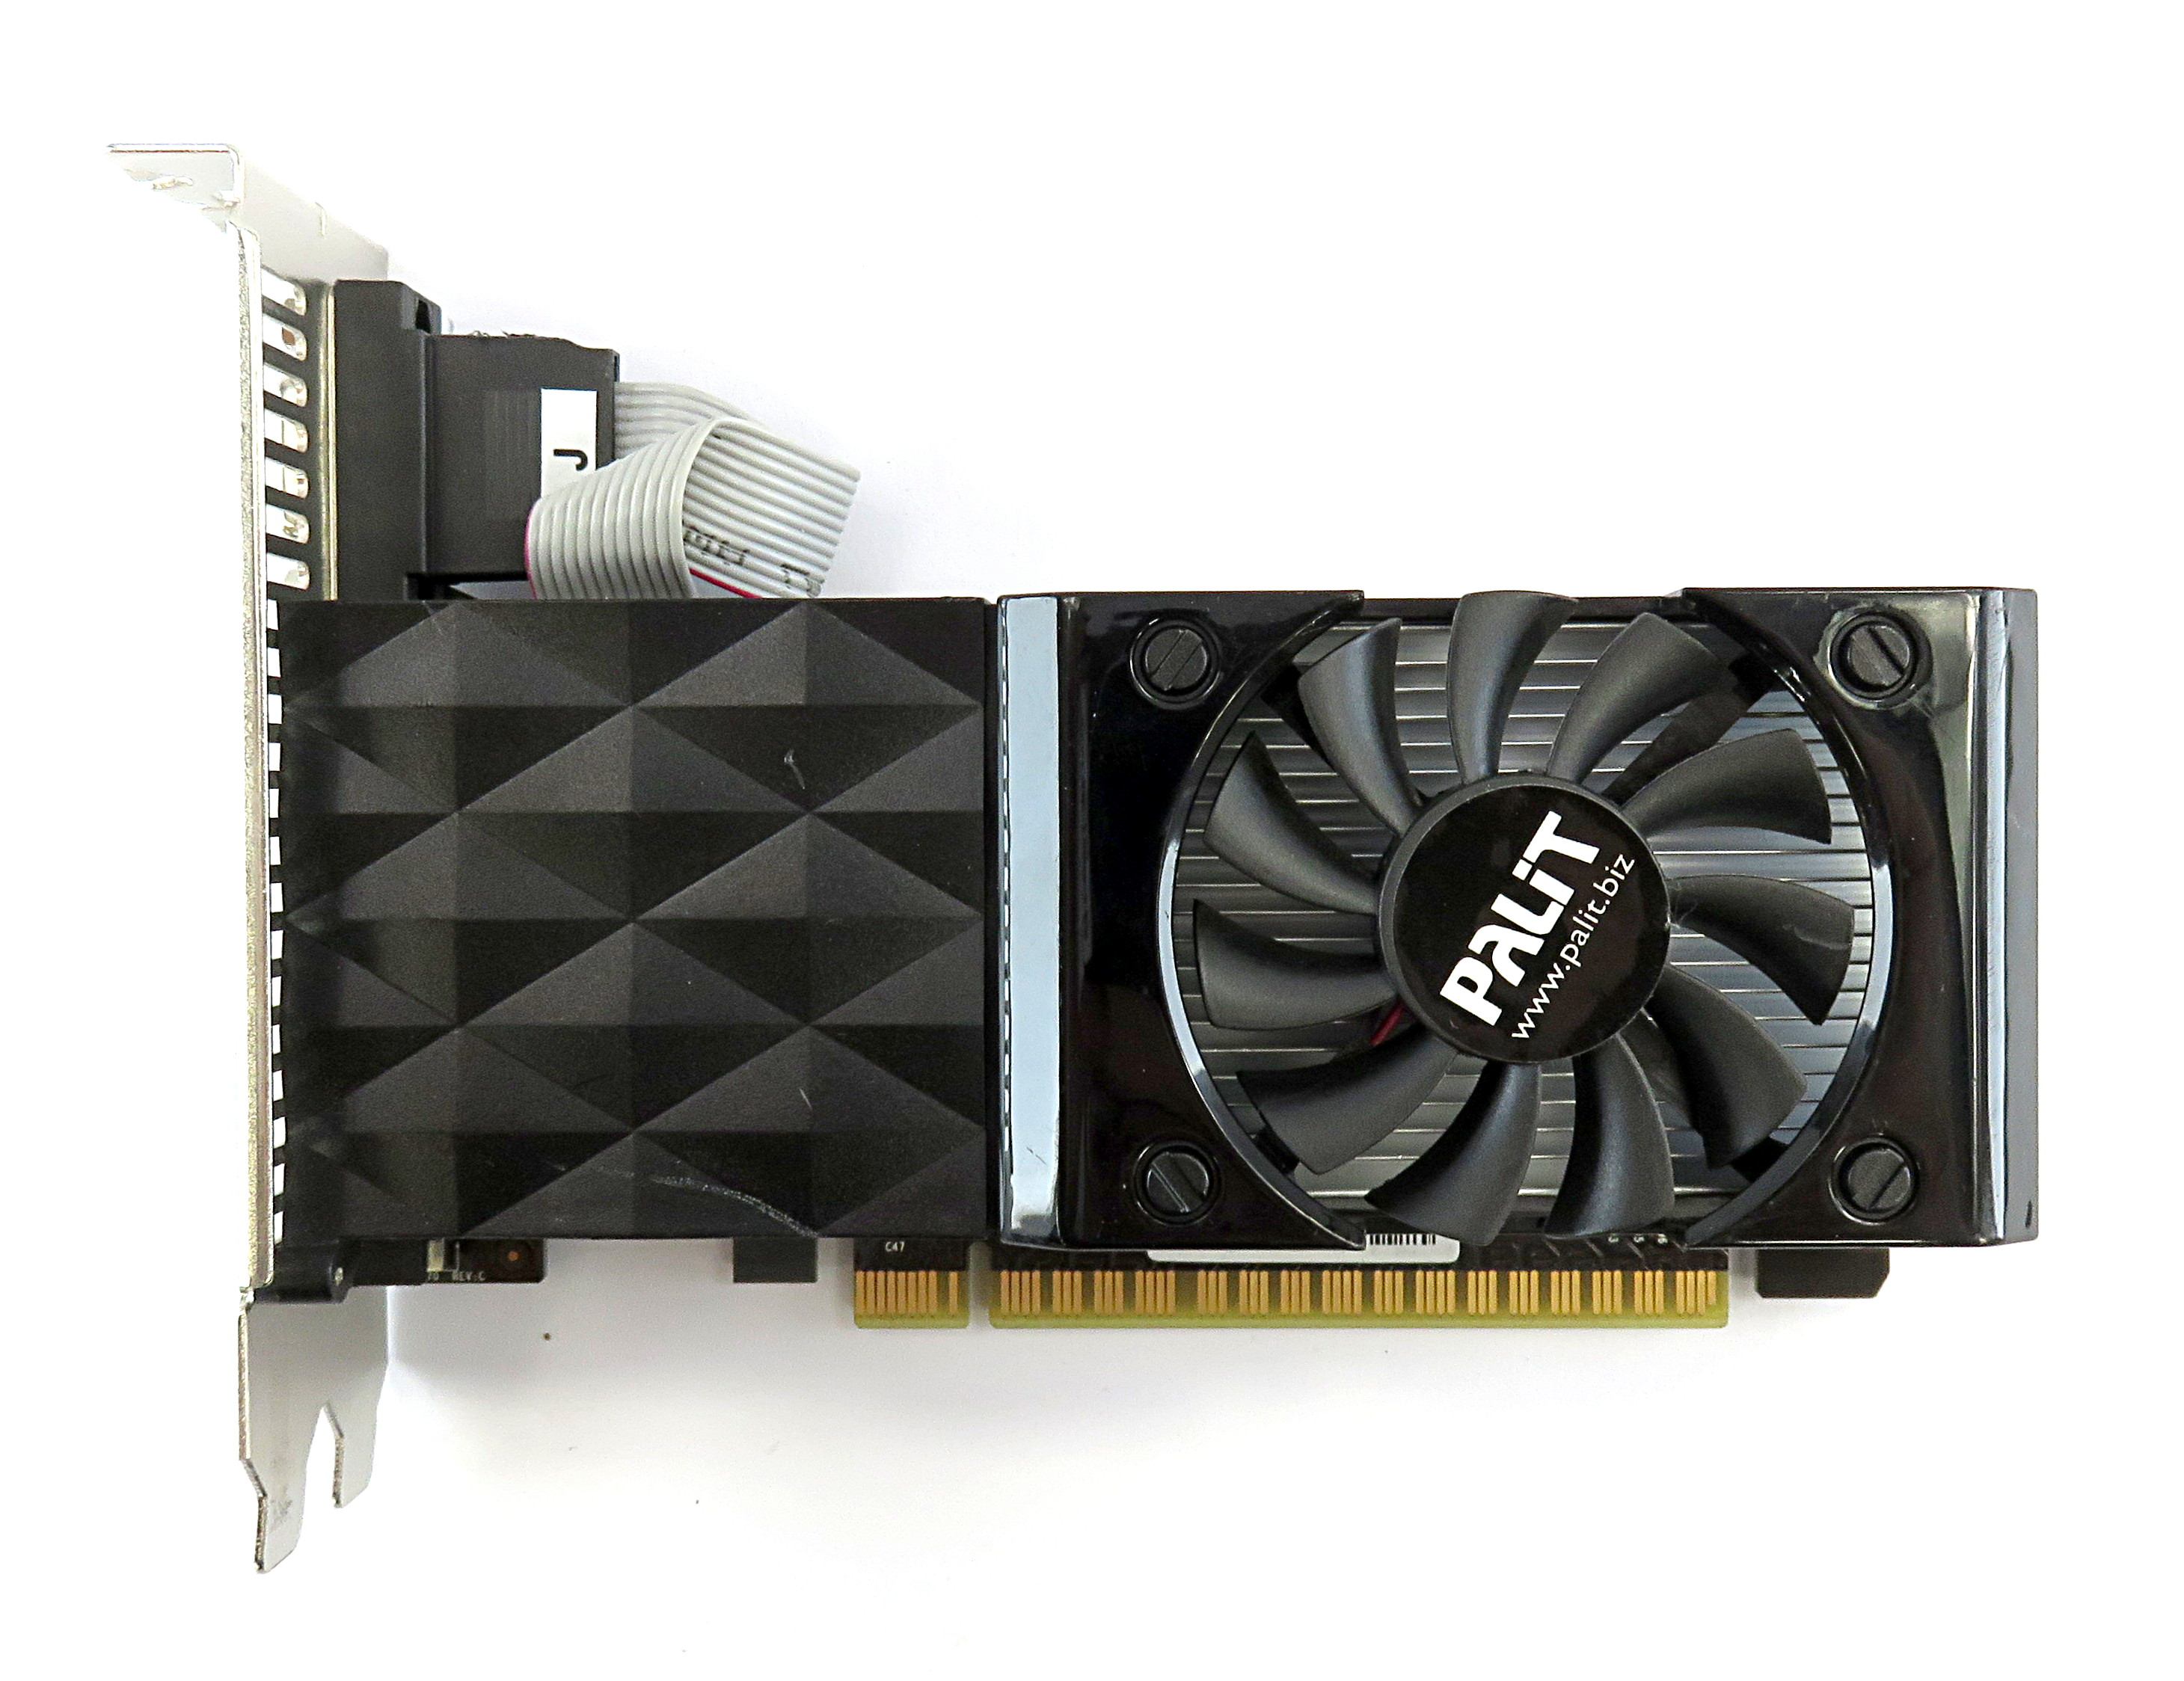 Palit nVidia GT640 1GB DDR3 PCIe Graphics Card NEAT6400HD01-1070F VGA/DVI/HDMI